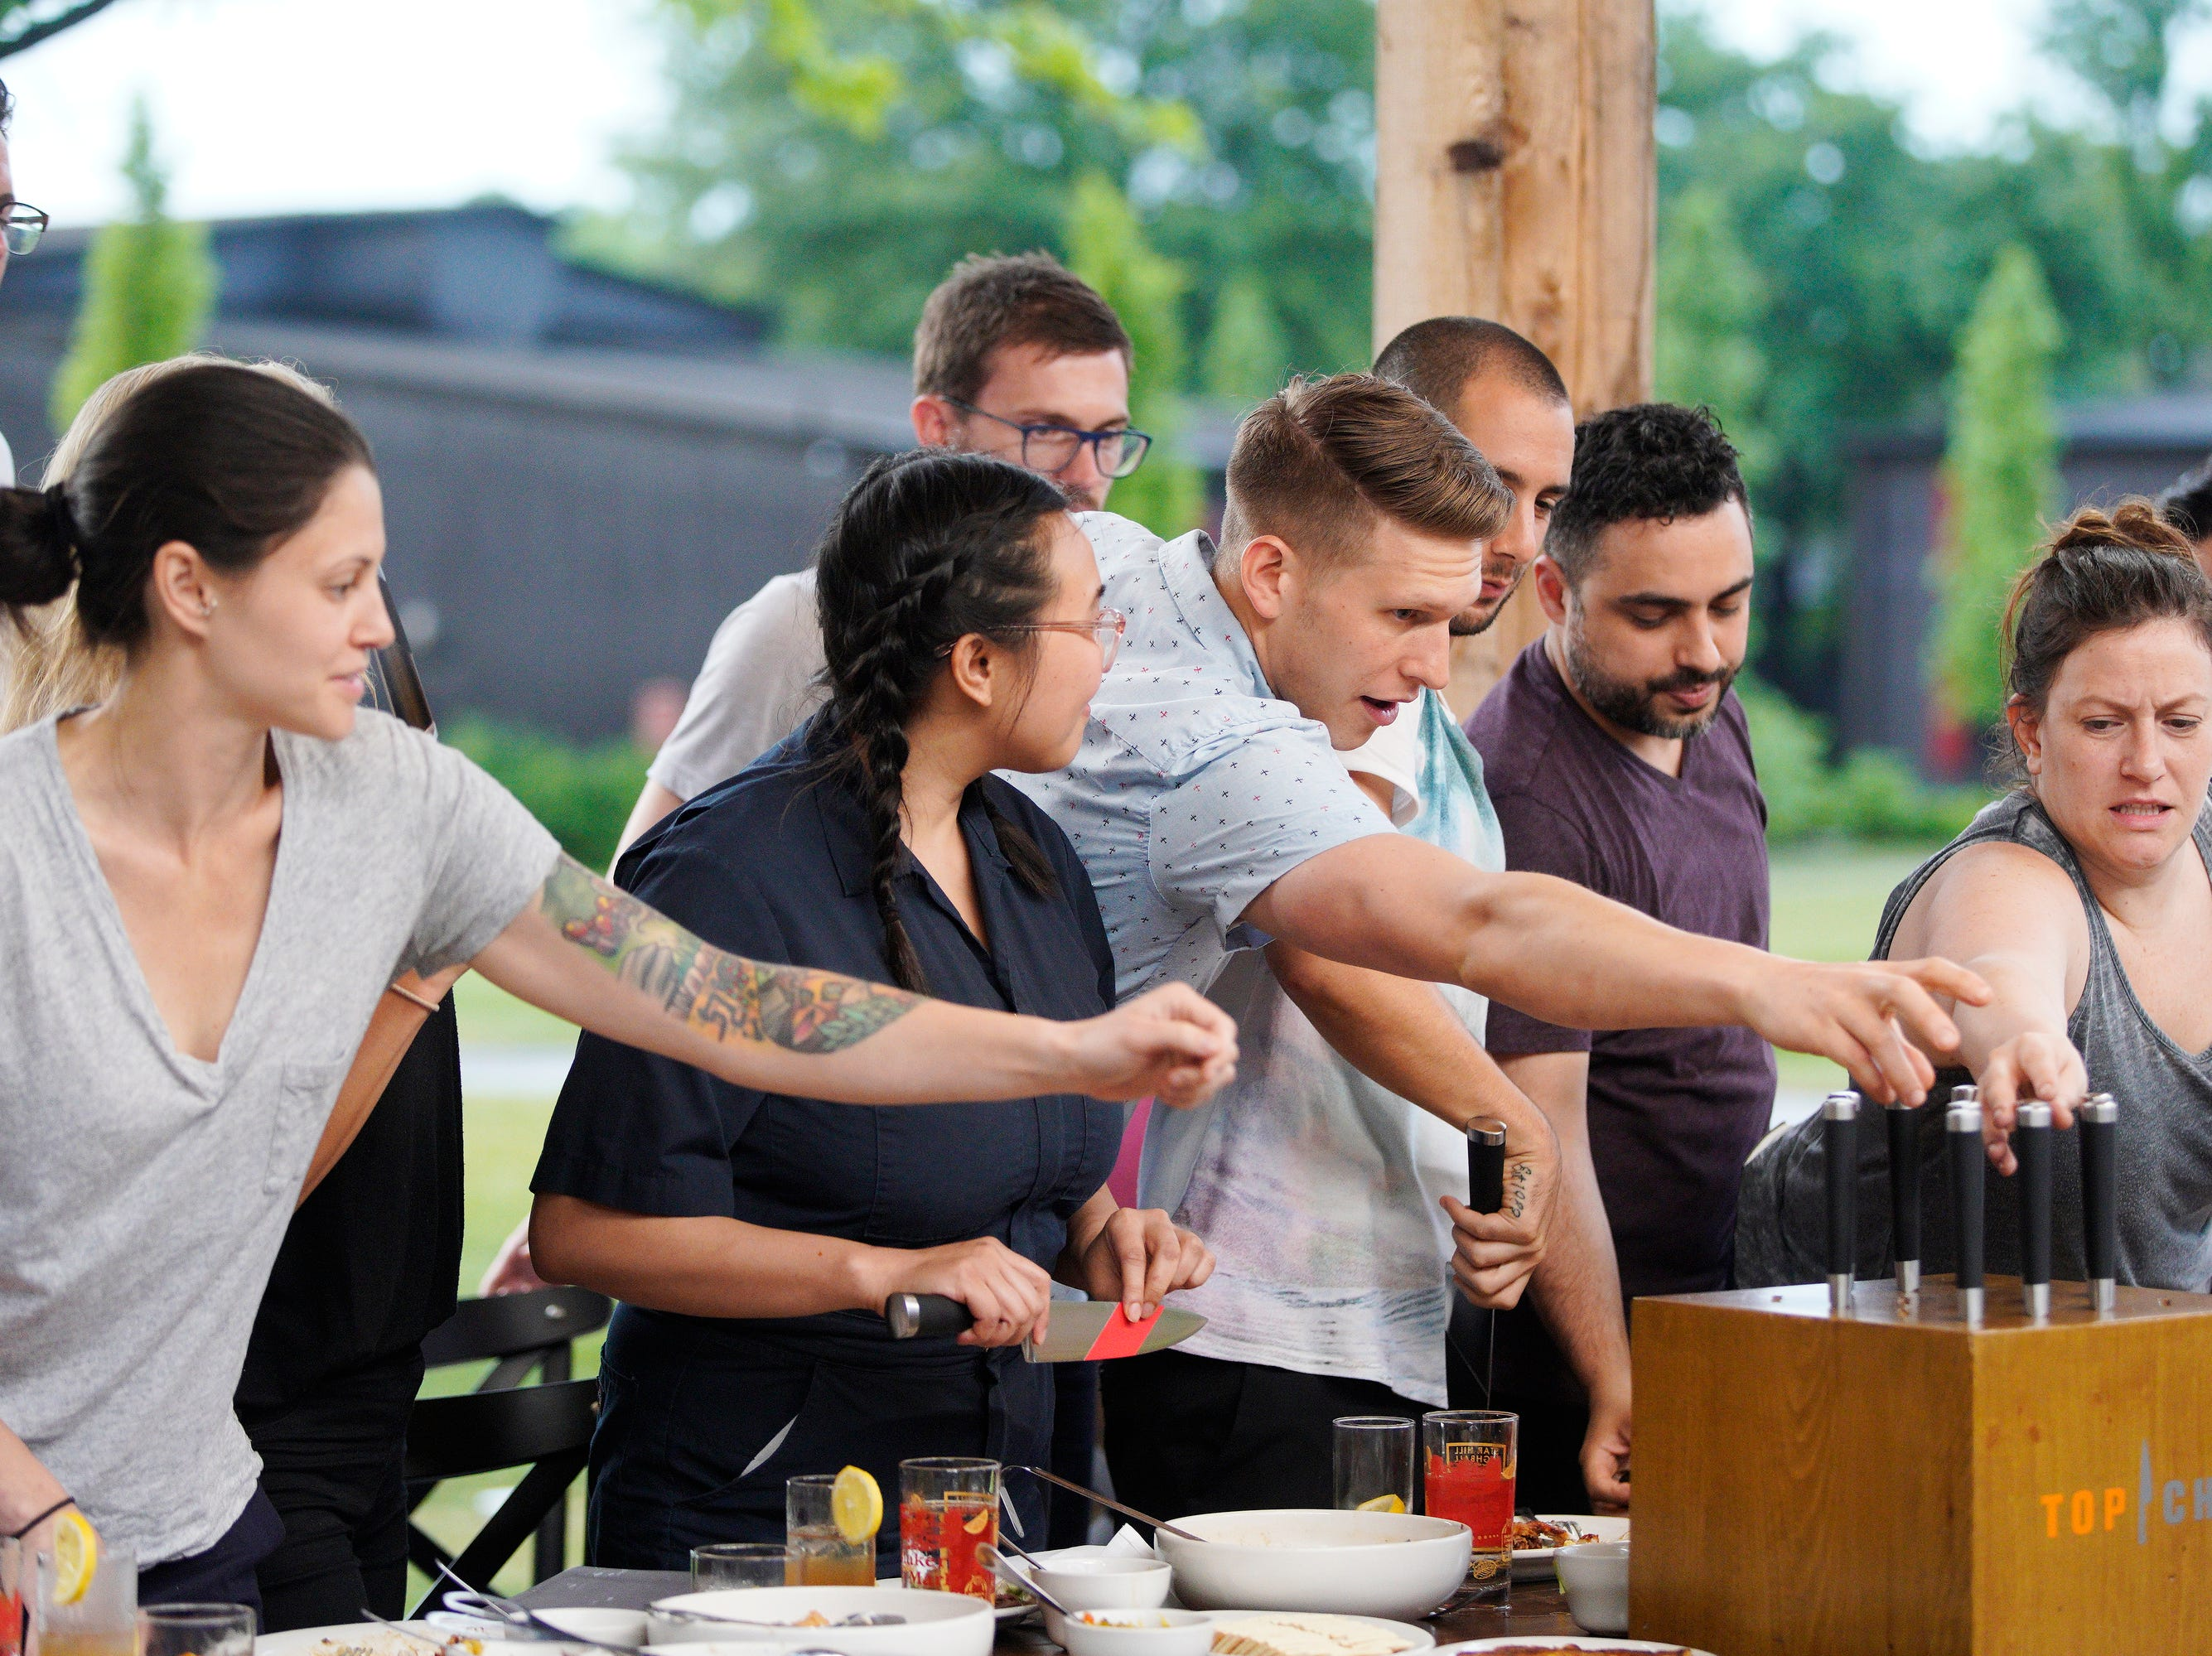 """""""Top Chef"""" contestants draw knives for a challenge on episode 2 of season 16."""